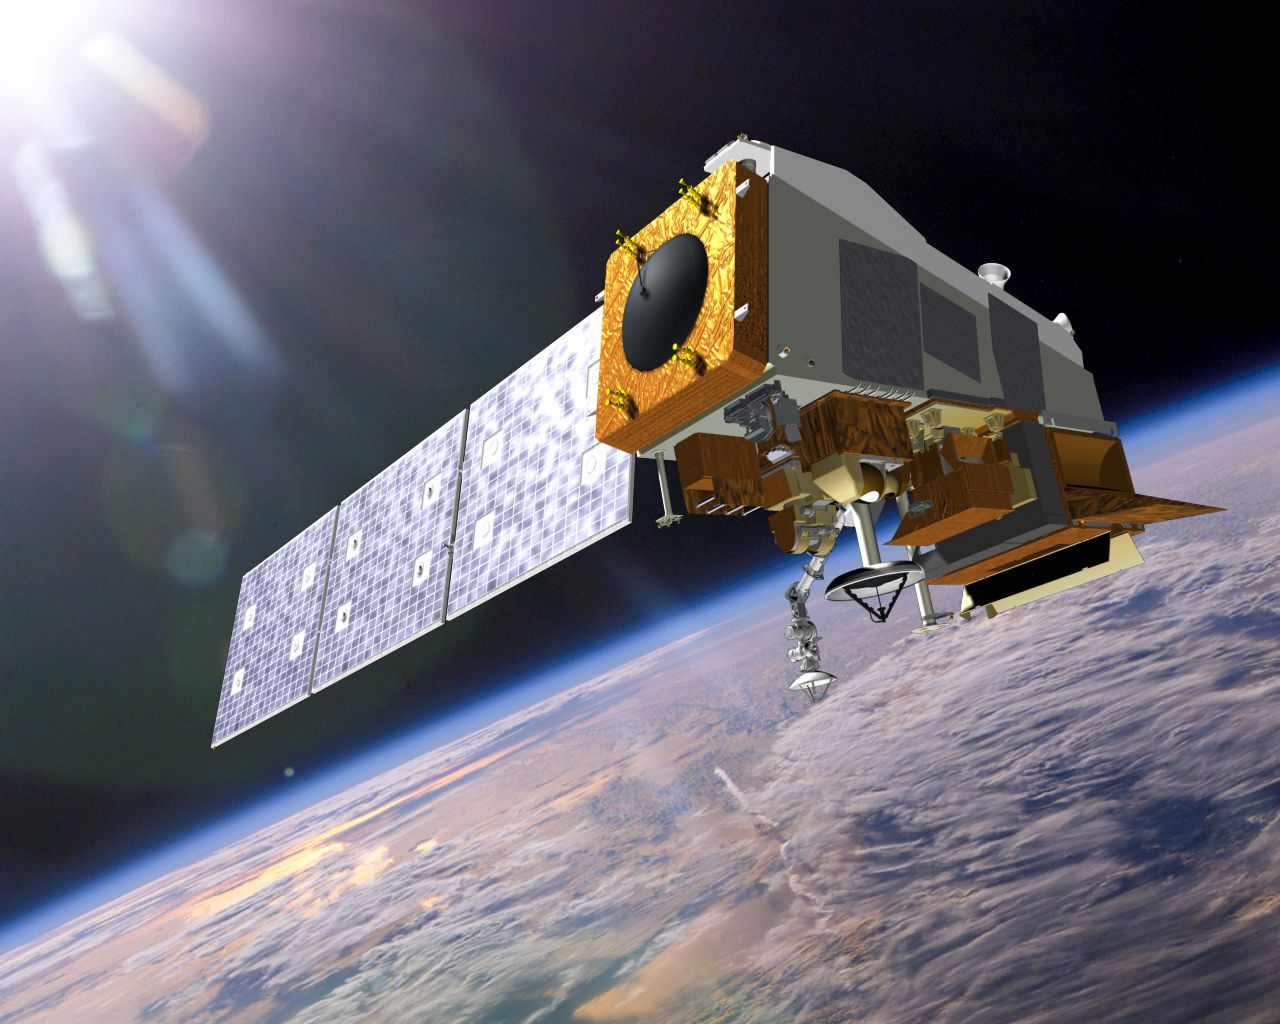 Raytheon's Joint Polar Satellite System Common Ground System is now operational